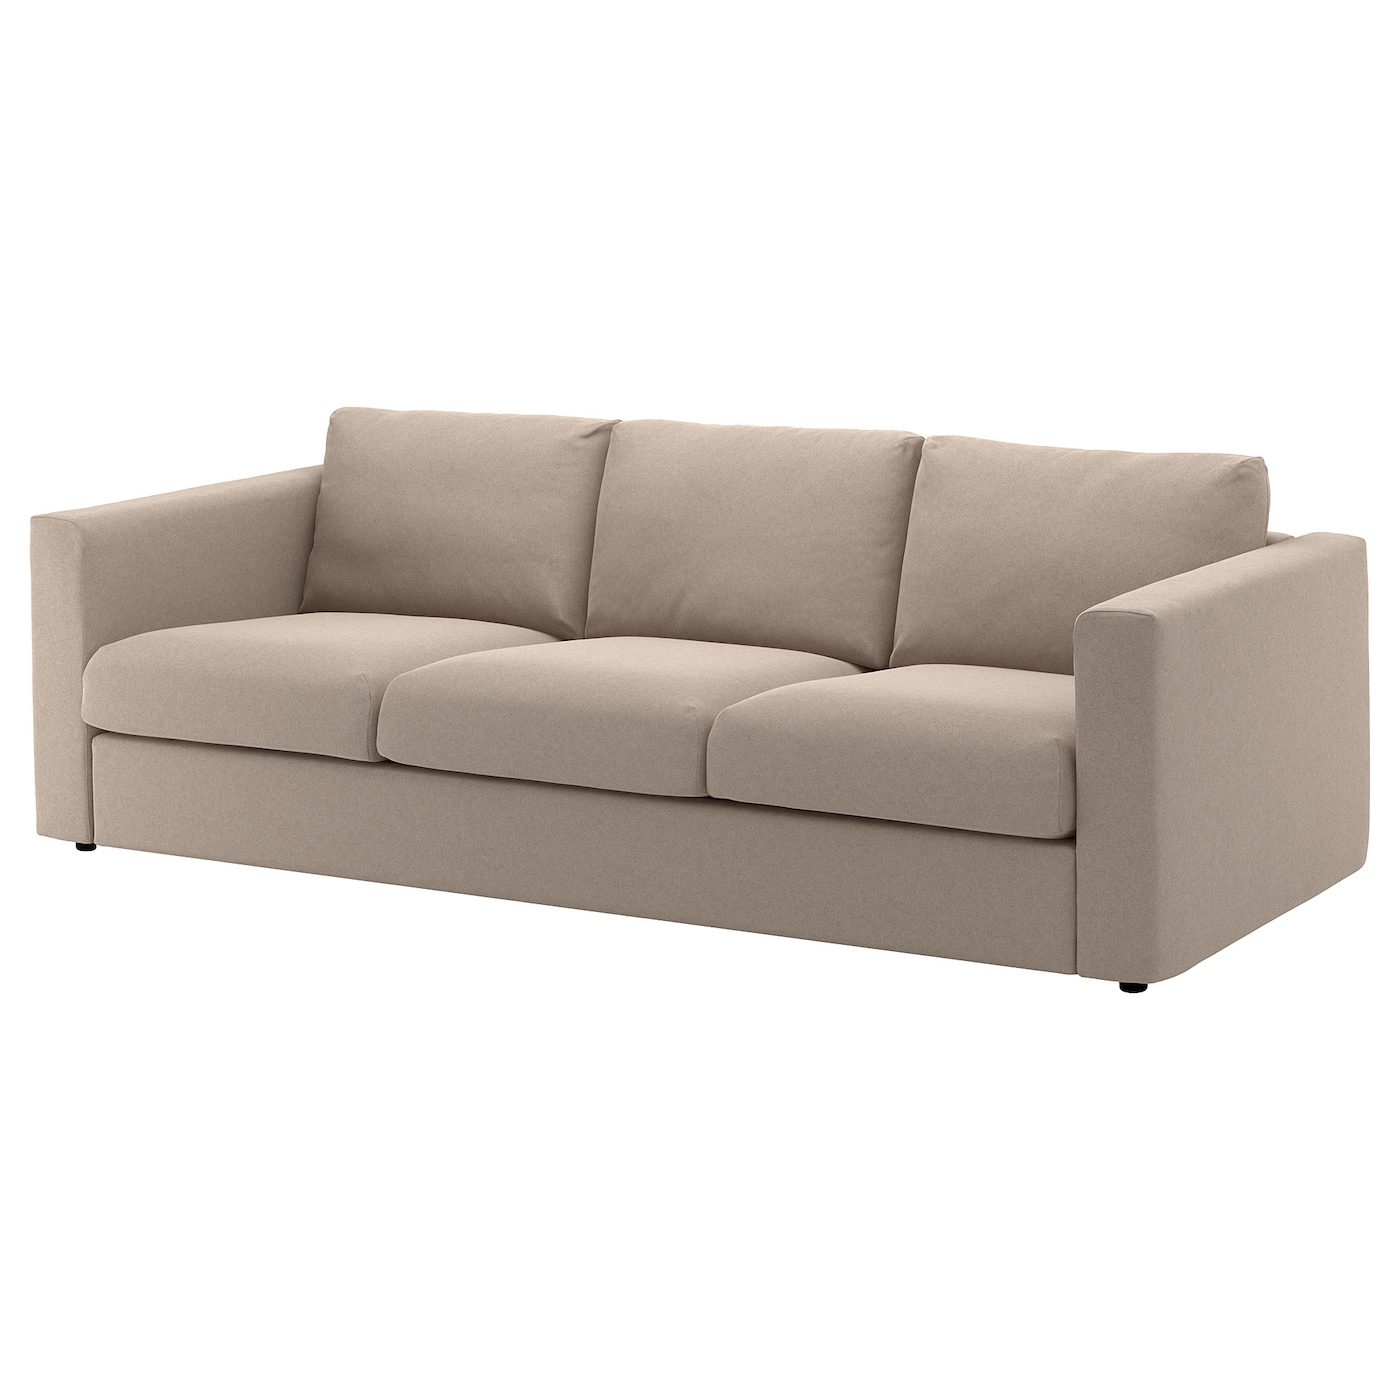 IKEA VIMLE cover for 3-seat sofa